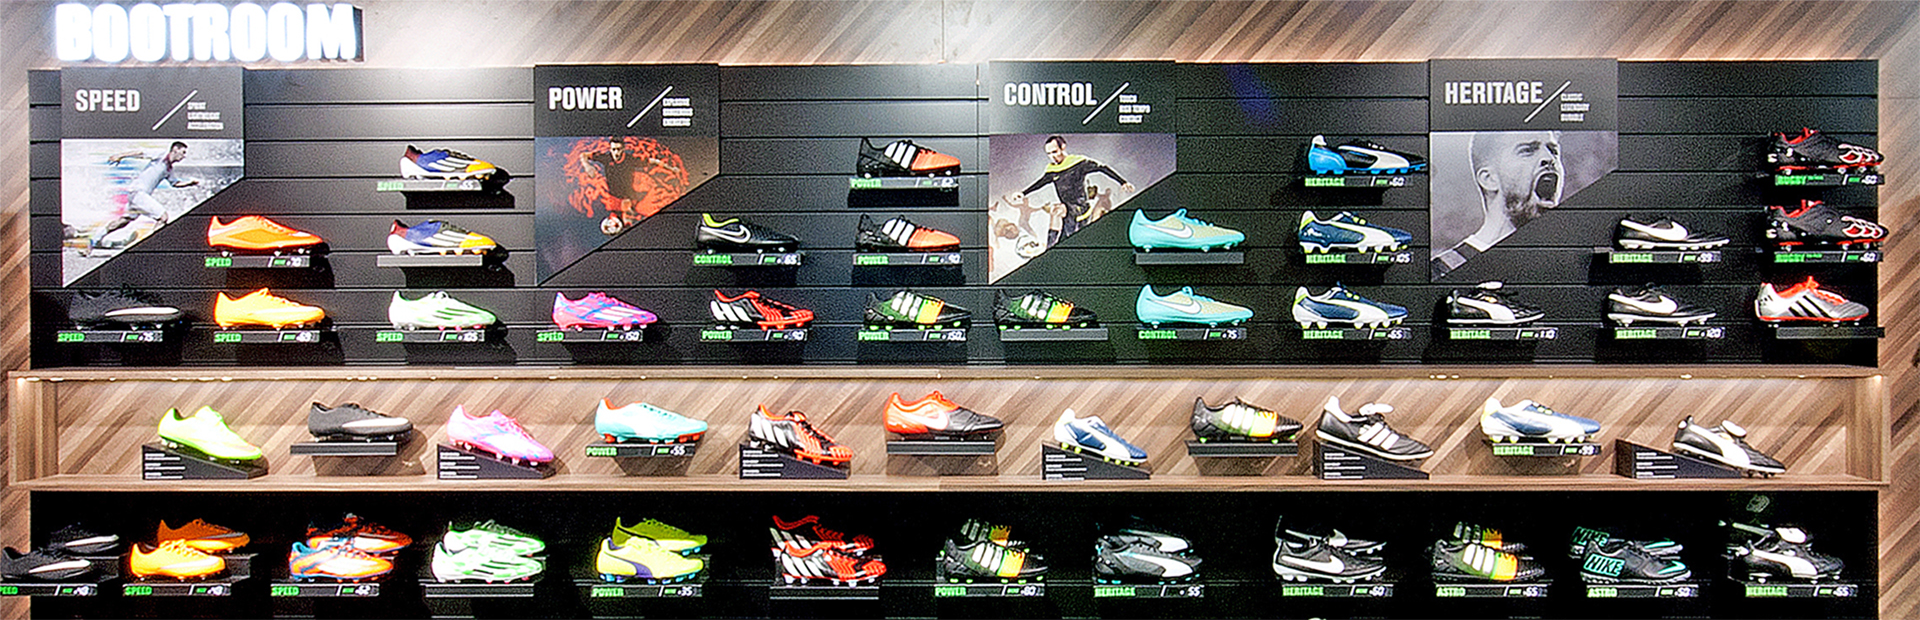 Lifestyle_Sports_Fitout_Whitewater_Store_Design1